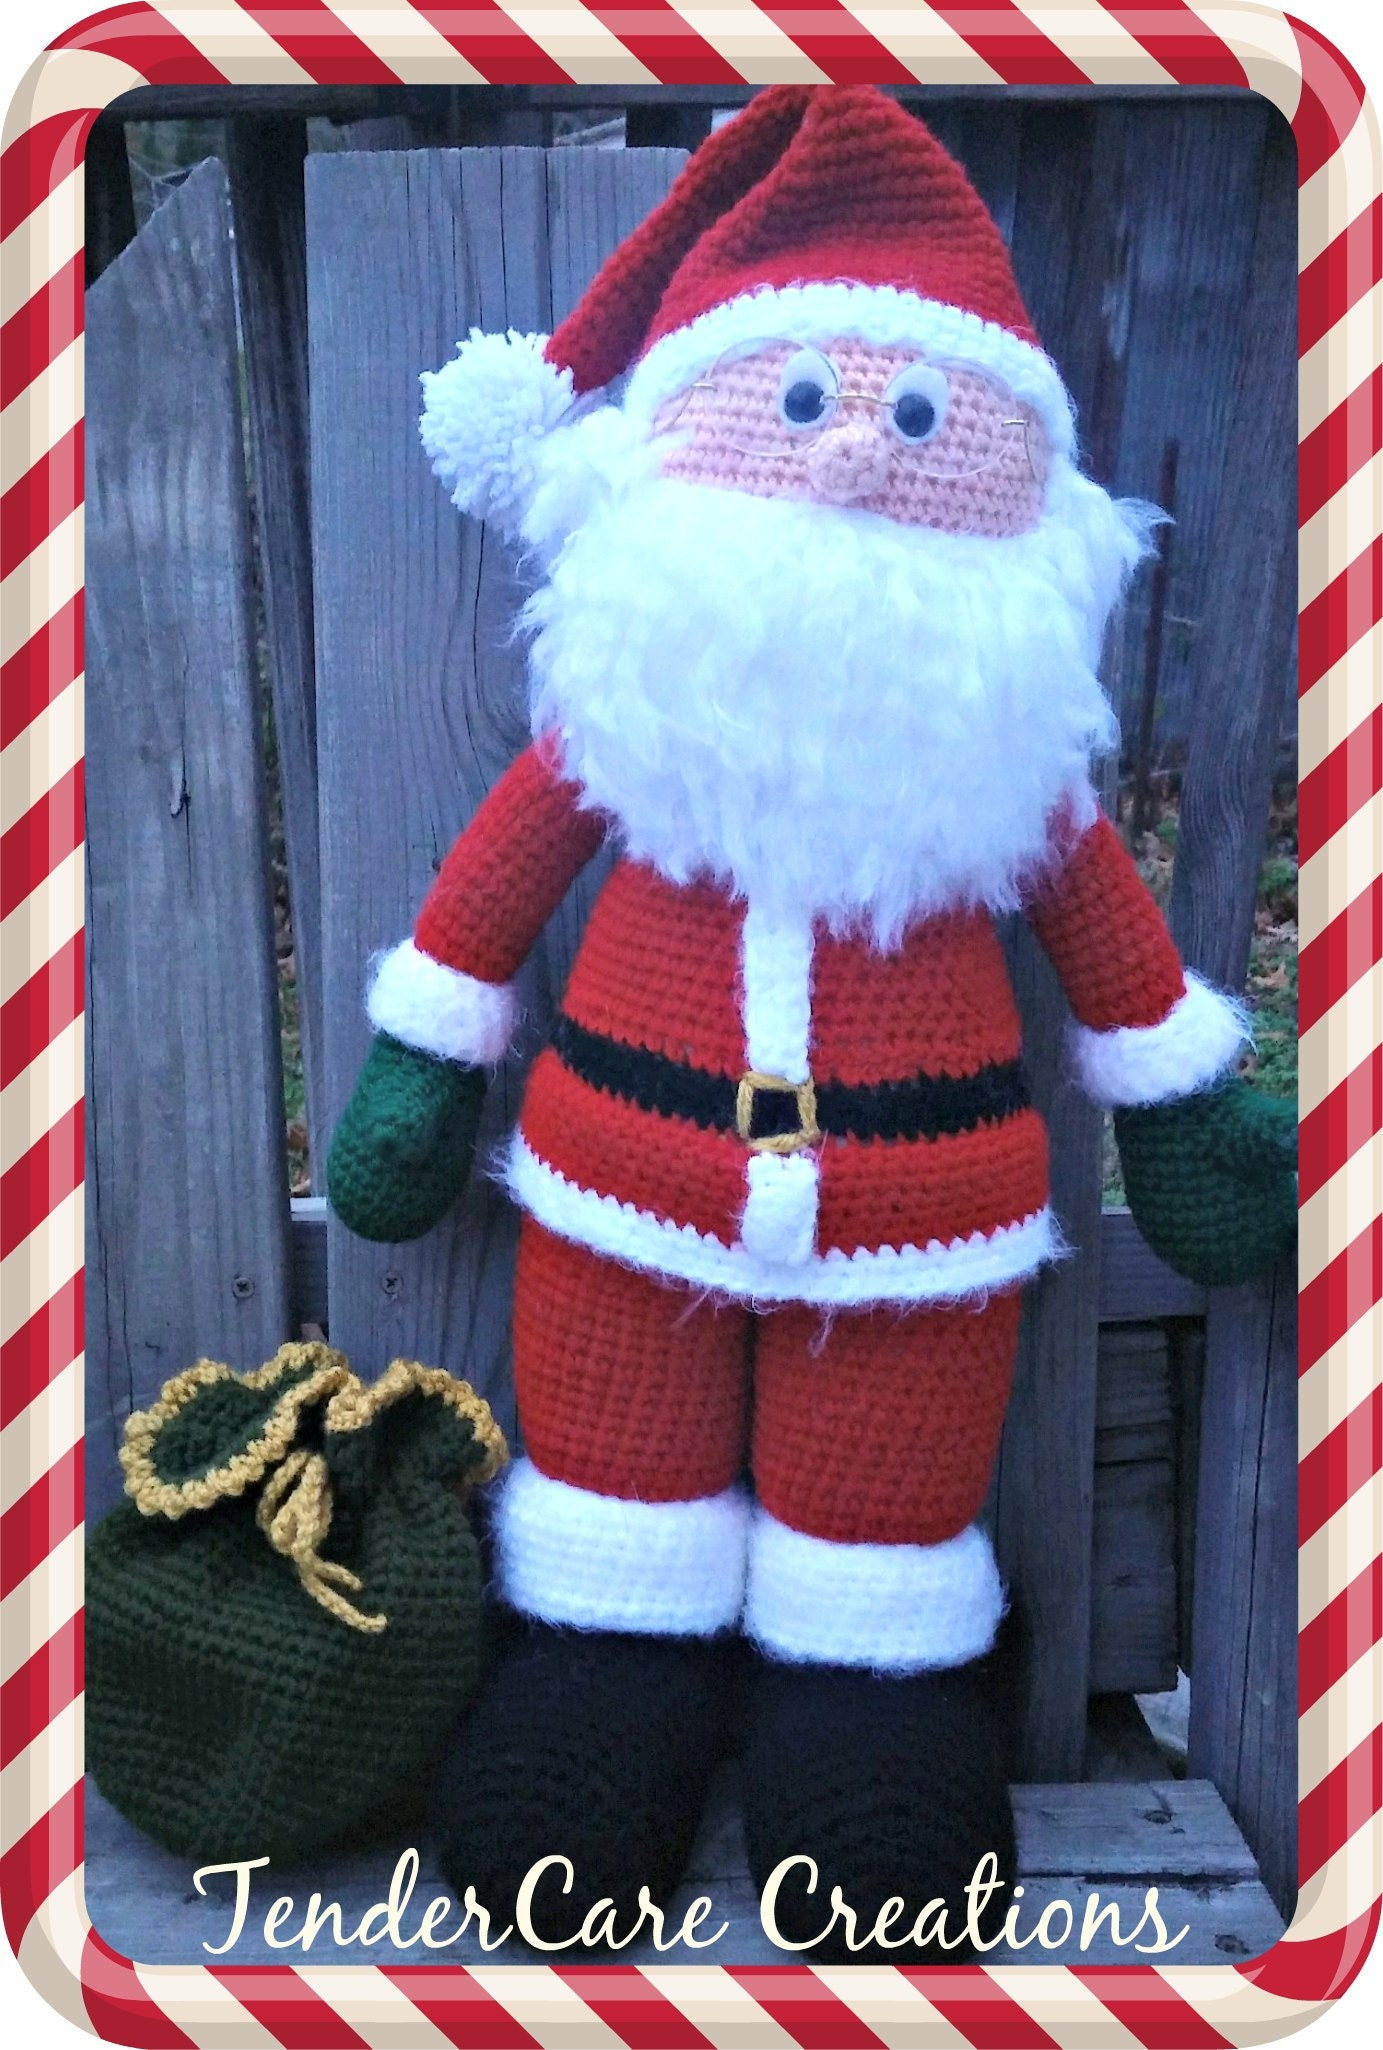 19 Free Amigurumi Christmas Santa Crochet Patterns | Christmas ... | 2050x1383